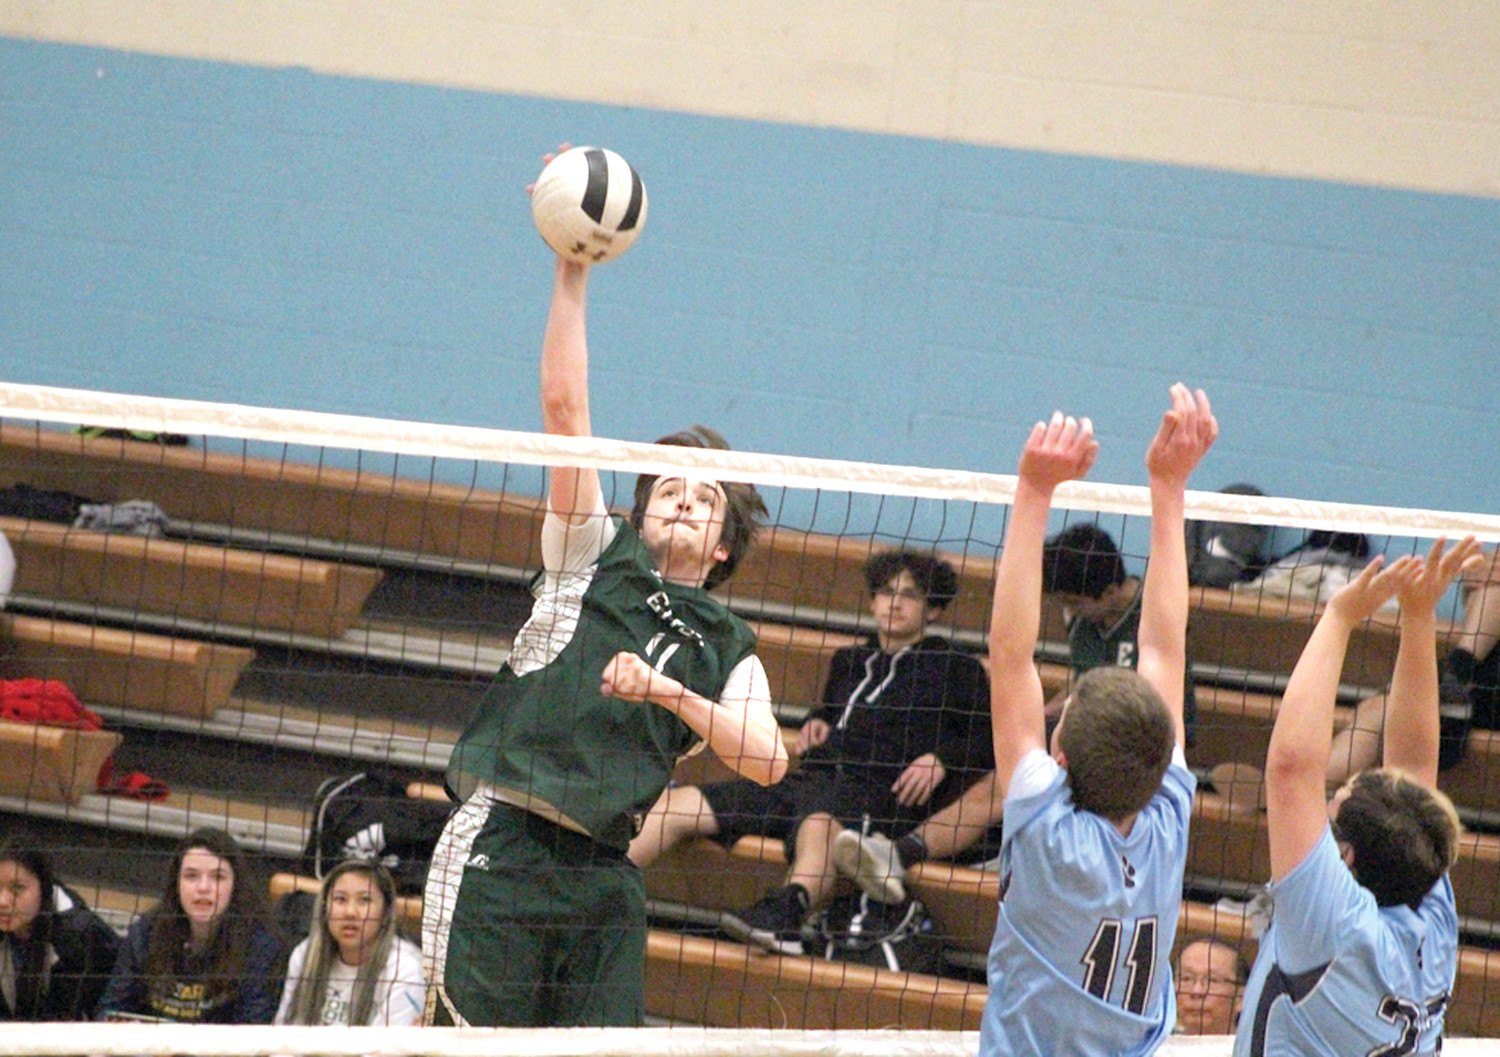 SOARING UP: Cranston East's Jacob Glantz takes to the air for a spike during the Thunderbolt's win .